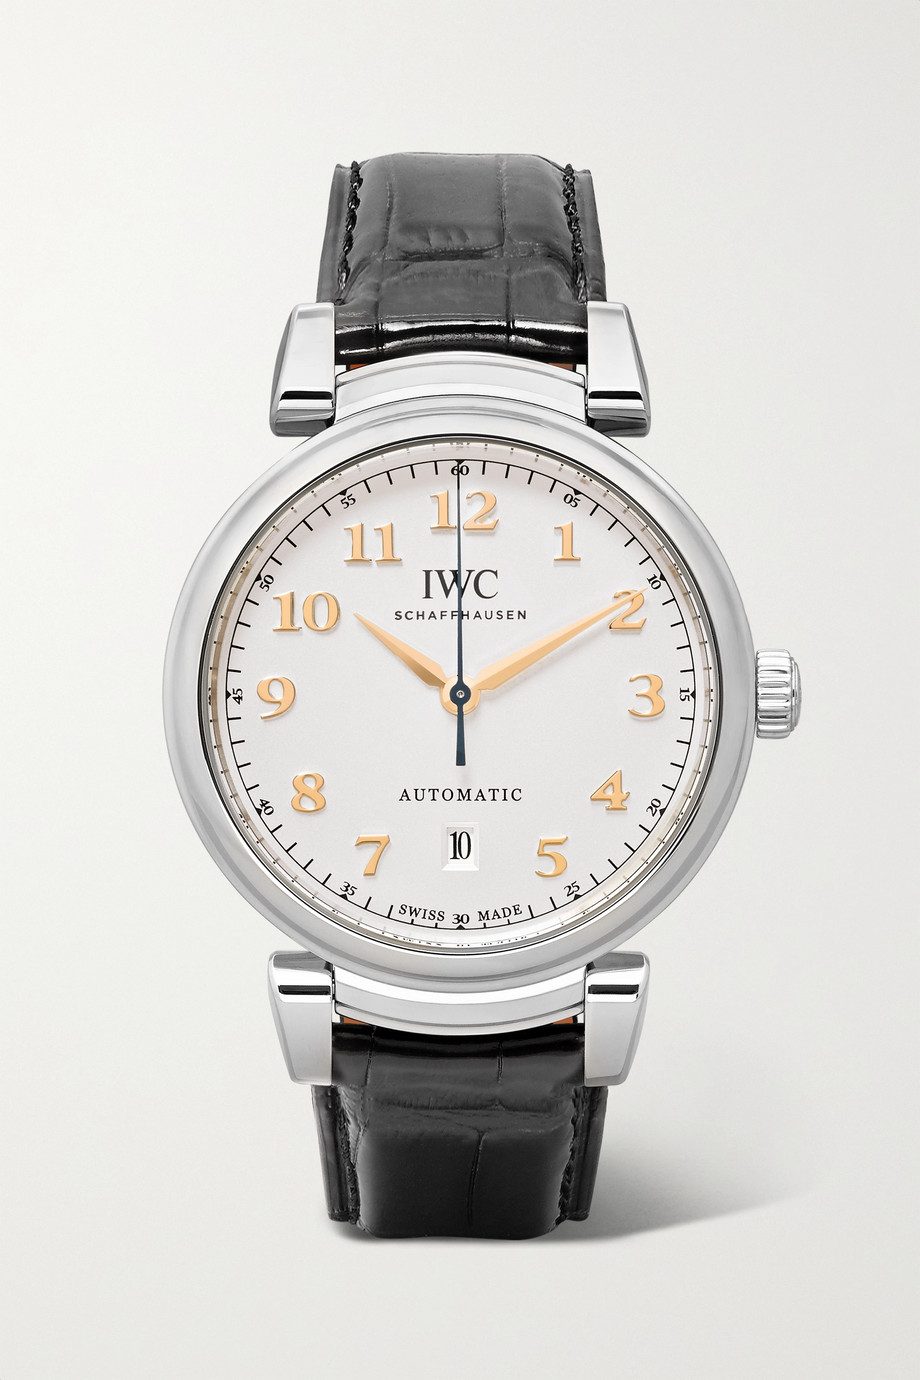 IWC SCHAFFHAUSEN Da Vinci Automatic 40mm stainless steel and alligator watch